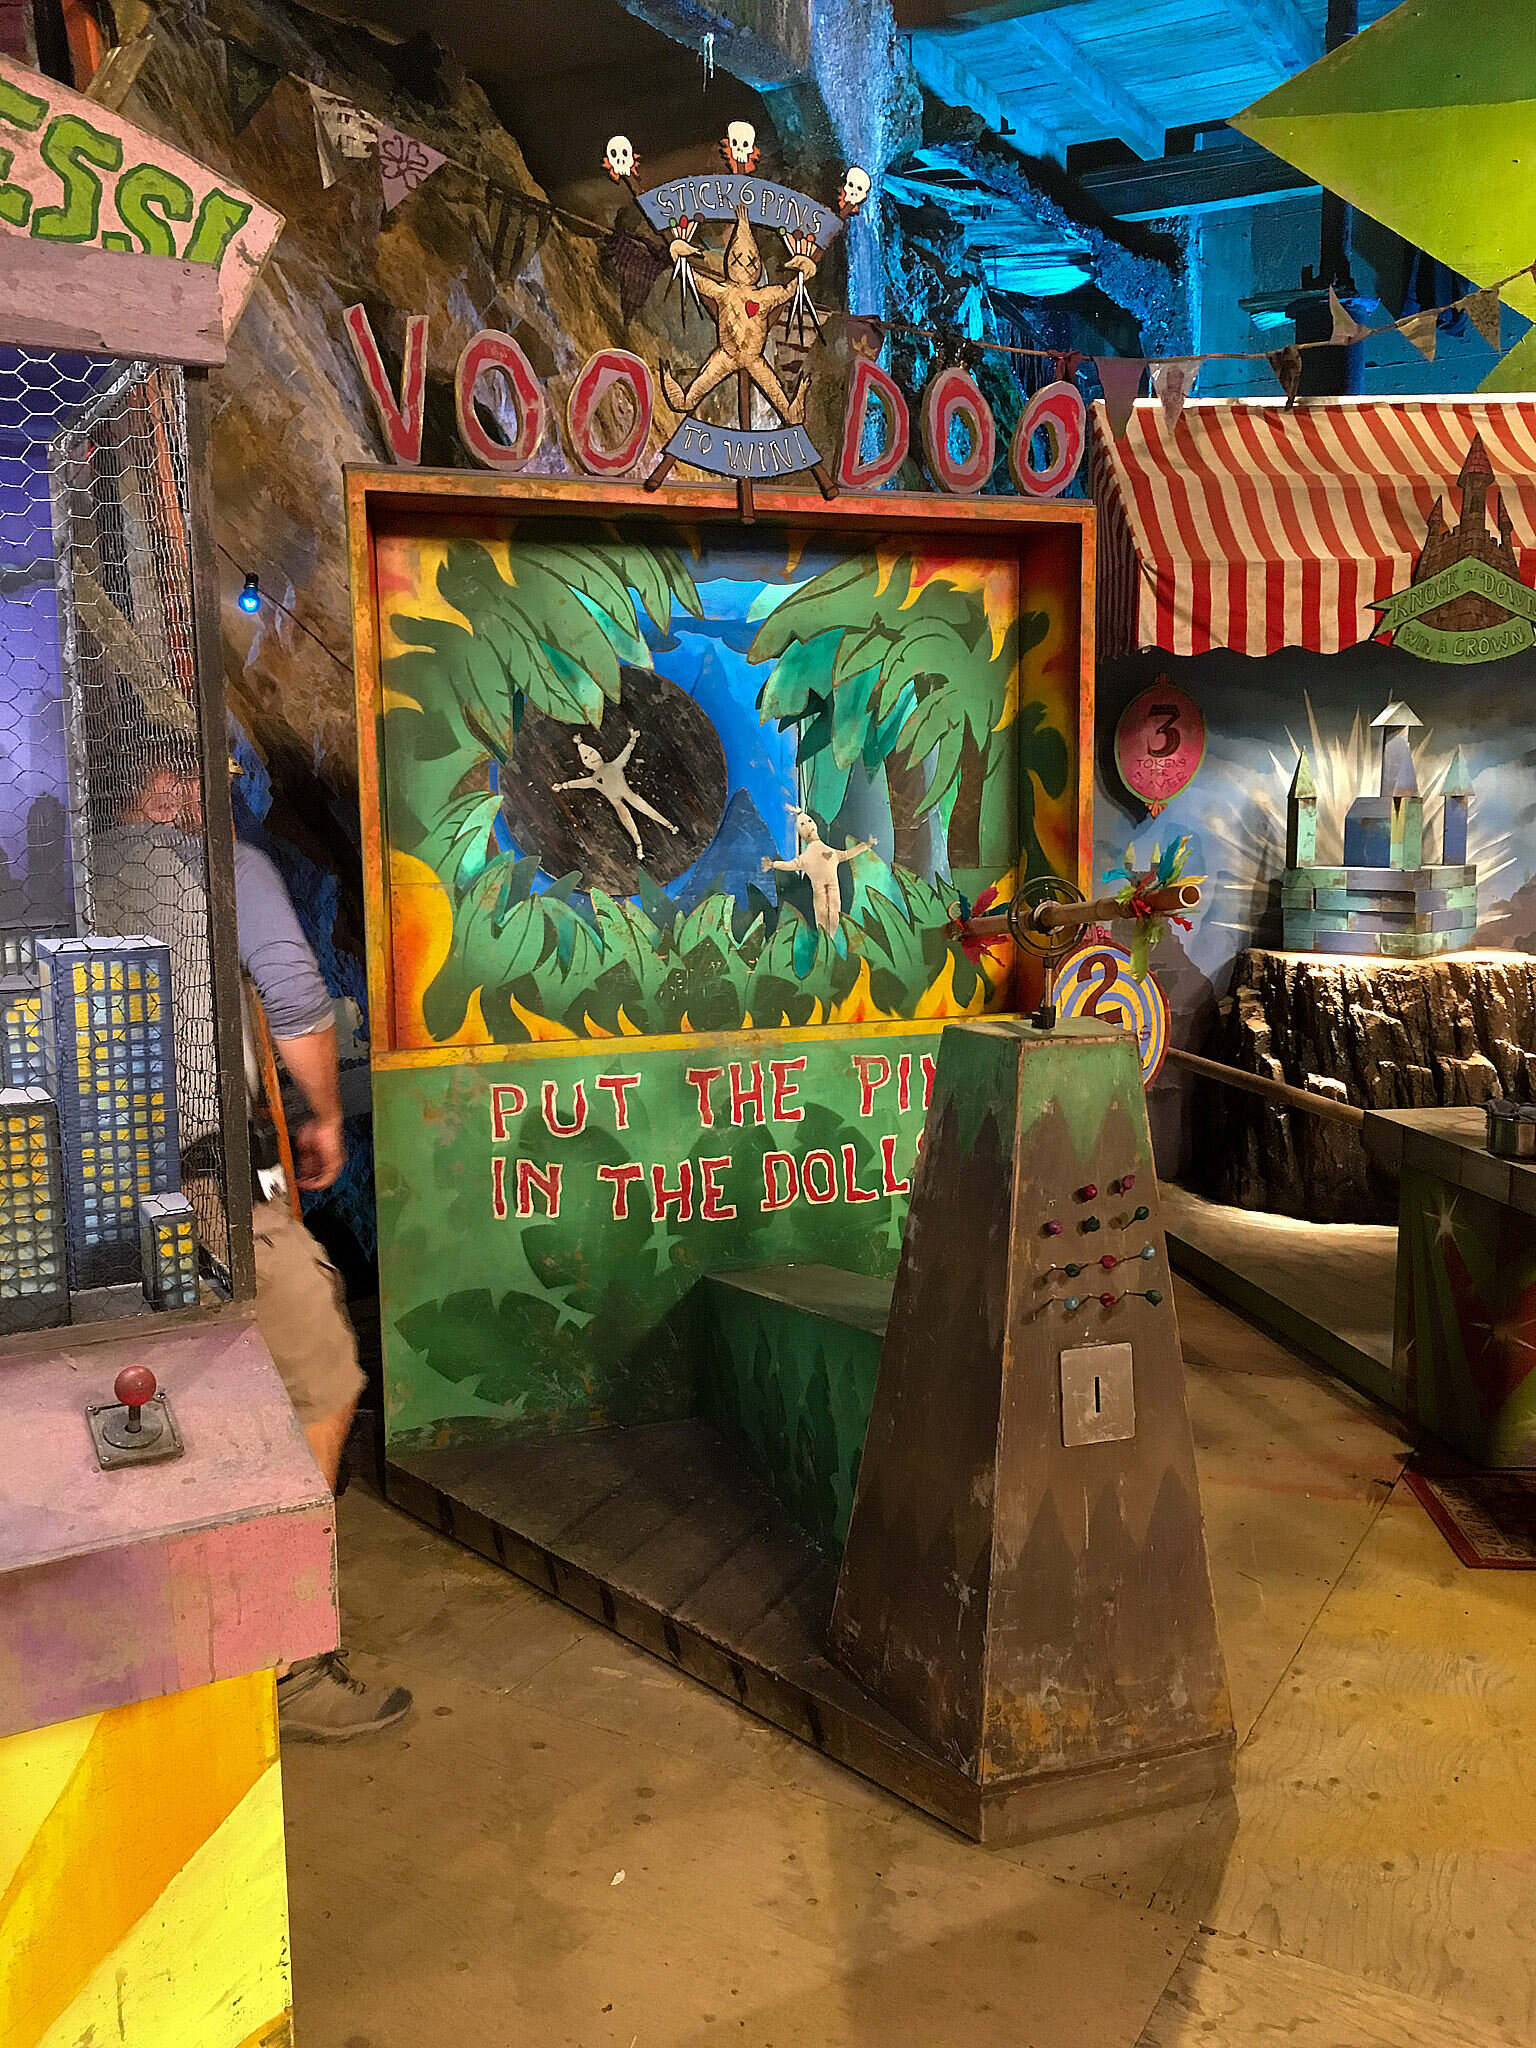 And here's the Voodoo game aged and ready to go on set In Dr. Facilier's Voodoo arcade.